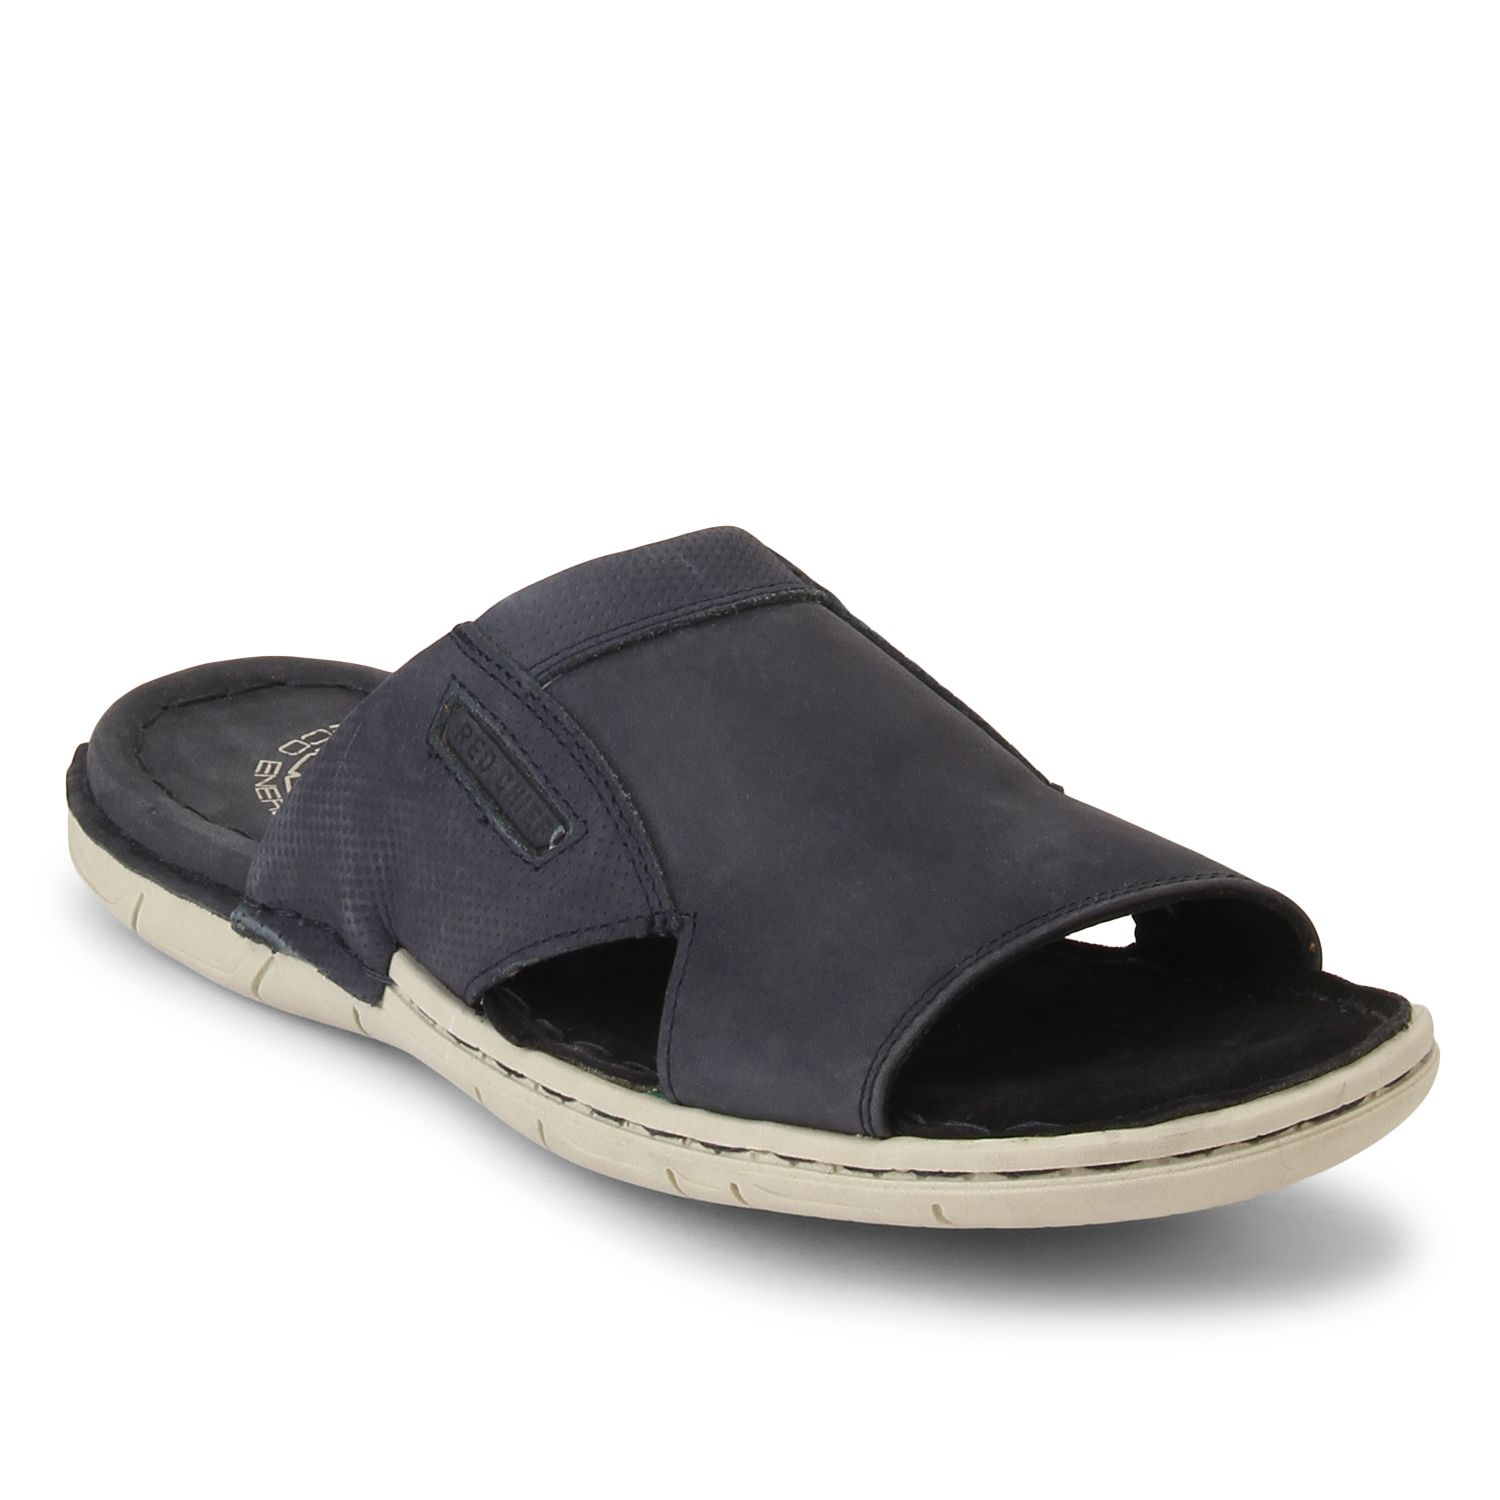 Stay comfortable in these Dark Blue slip on men's sandals brought to you by Red  Chief in their Eco Energy footwear collection. Fully padded upper and suede  ...